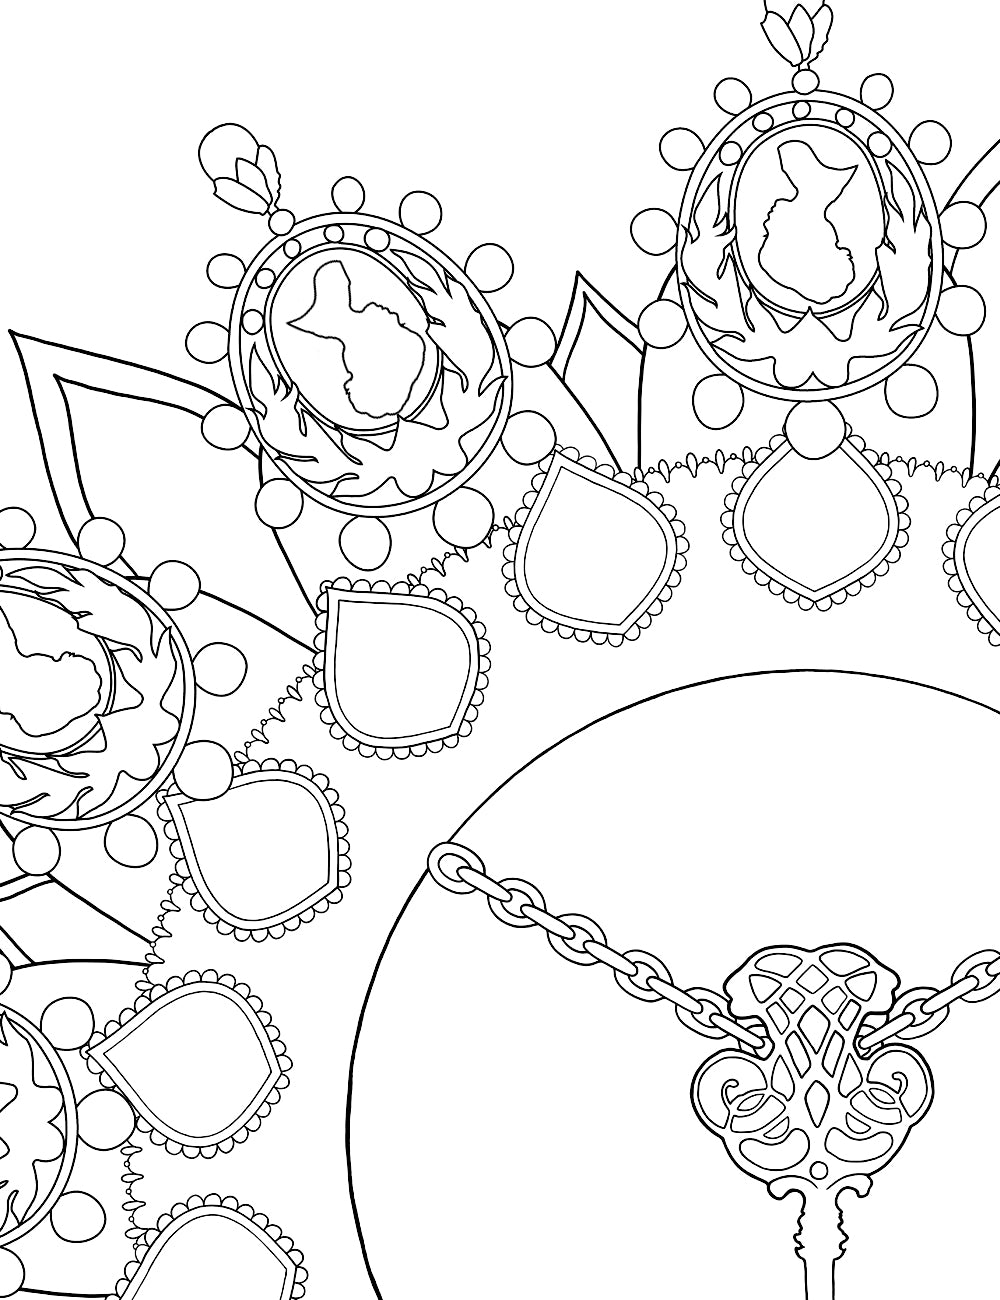 Asylum Coloring Book Page: Mournington's Key